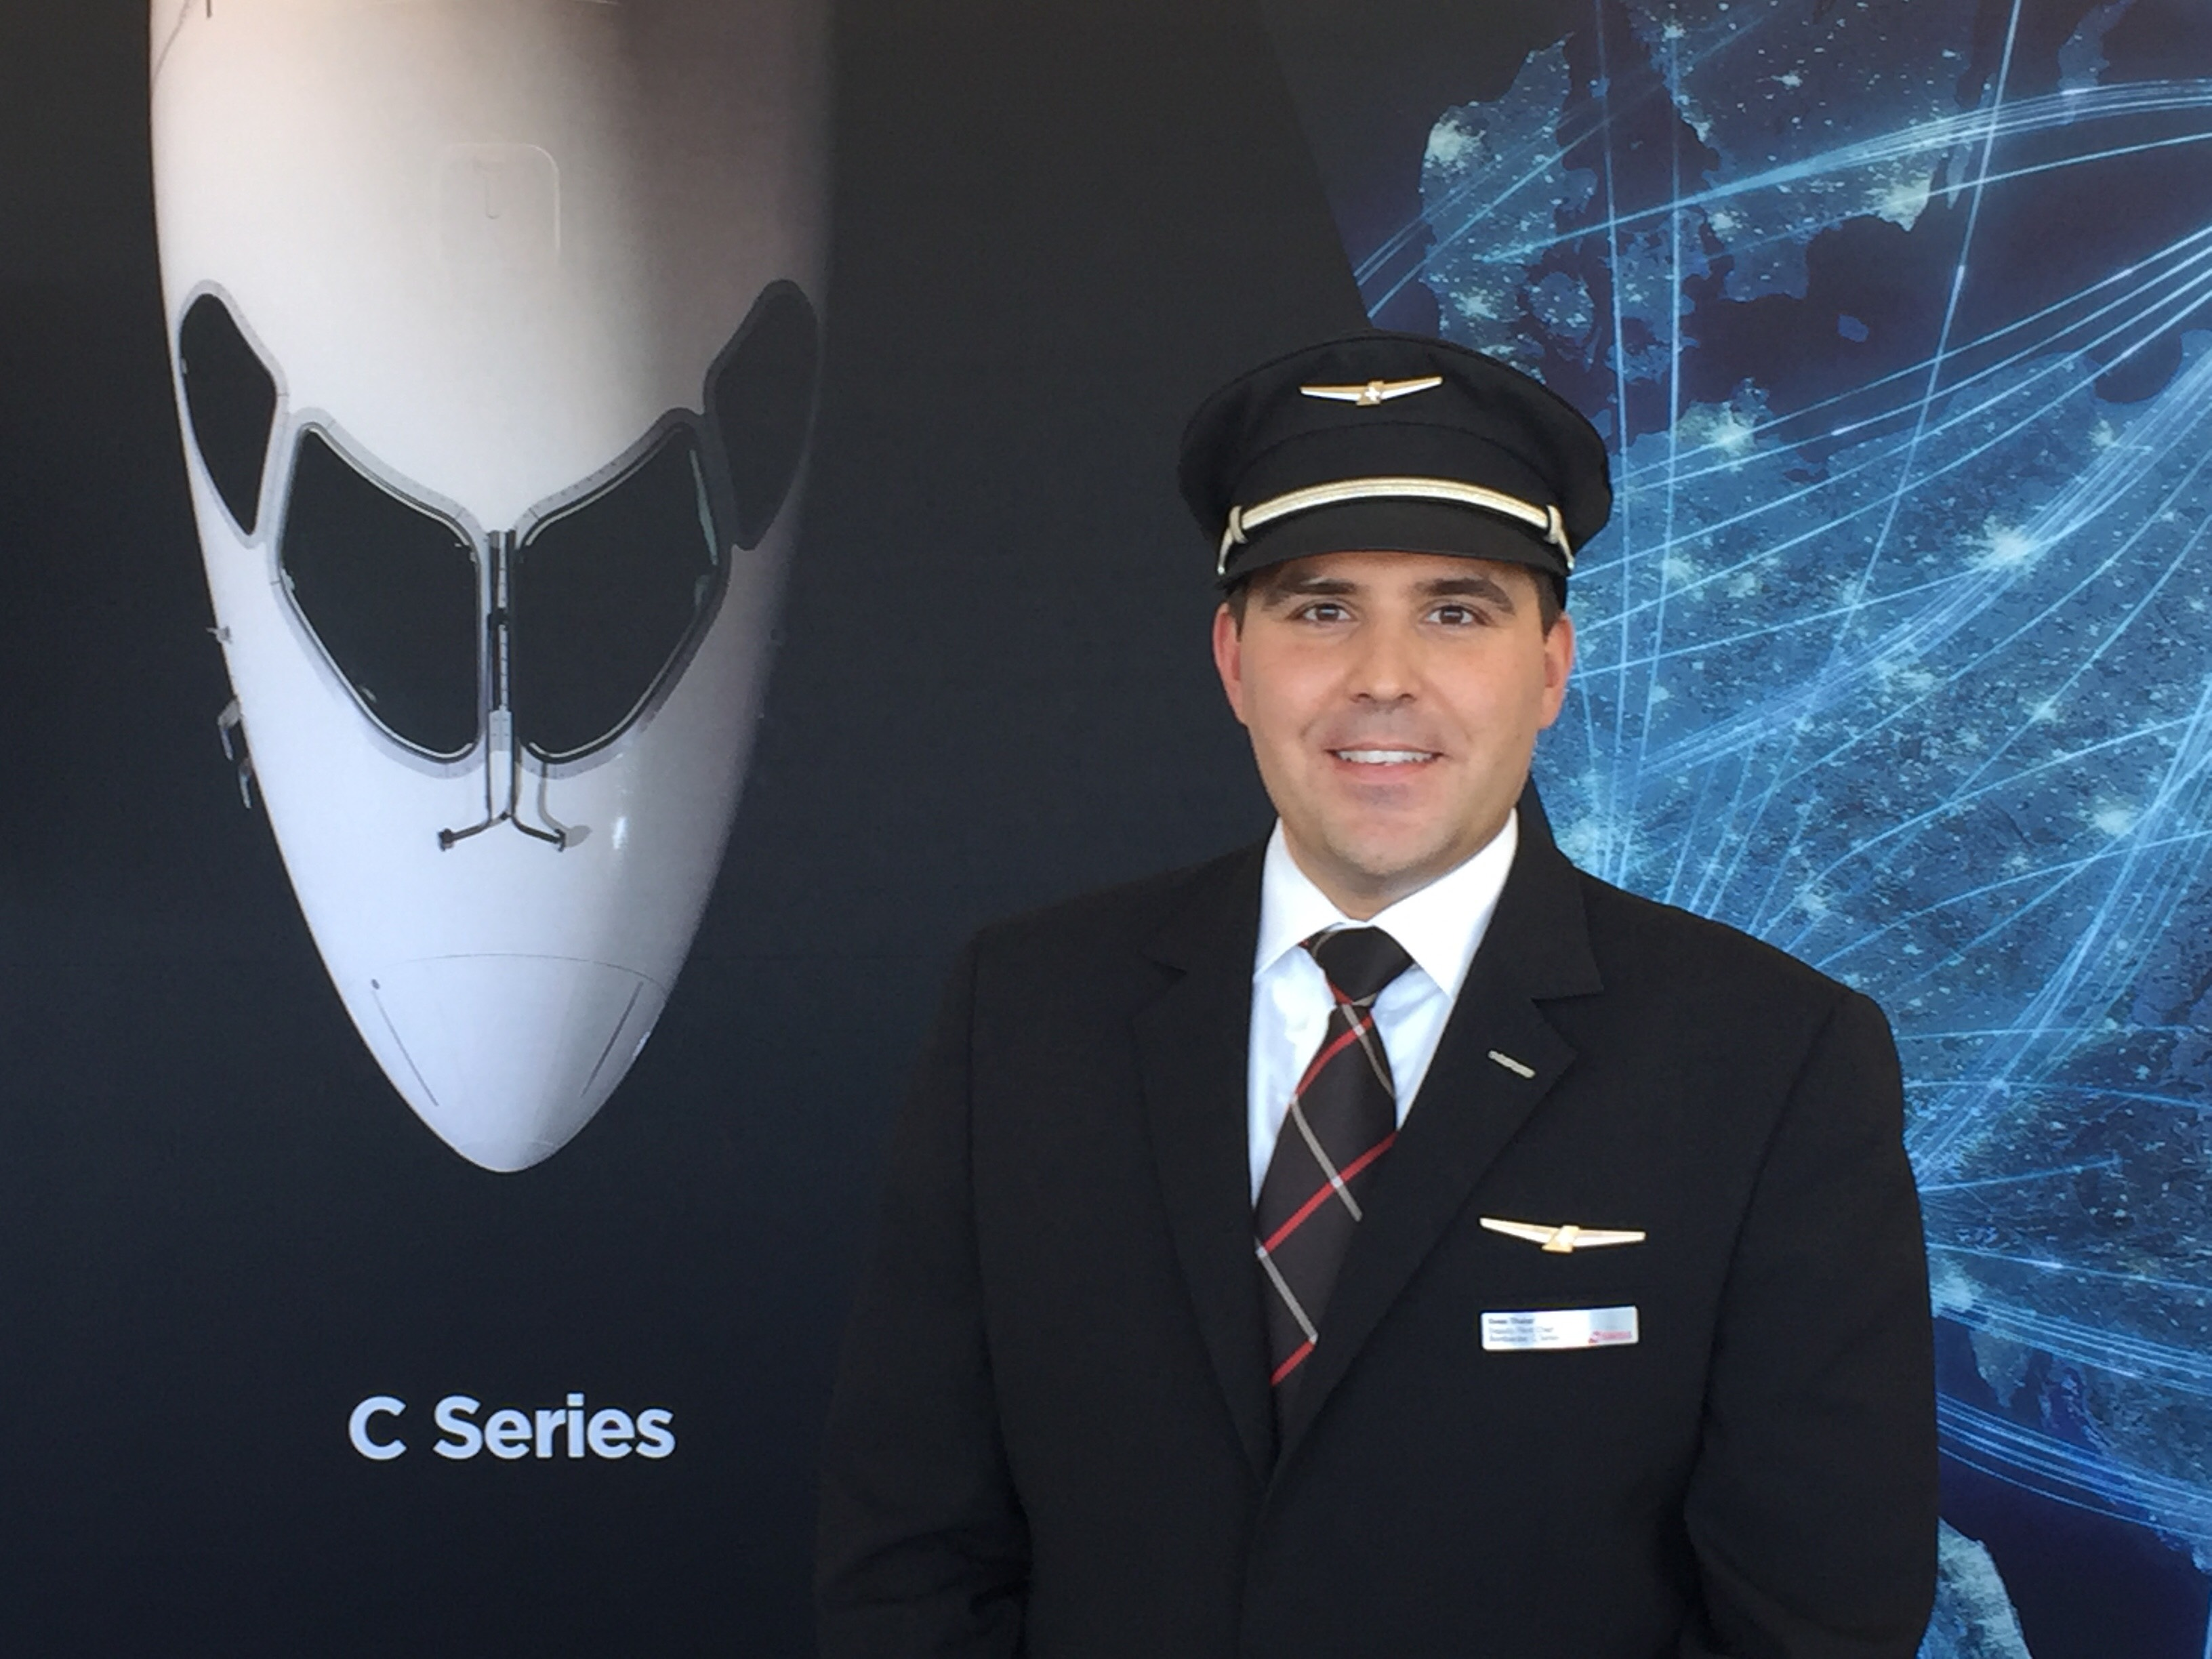 Captain Sven Thaler, director, deputy fleet chief Bombardier C Series, SWISS, at Bombardier's Aero Perspectives media event.